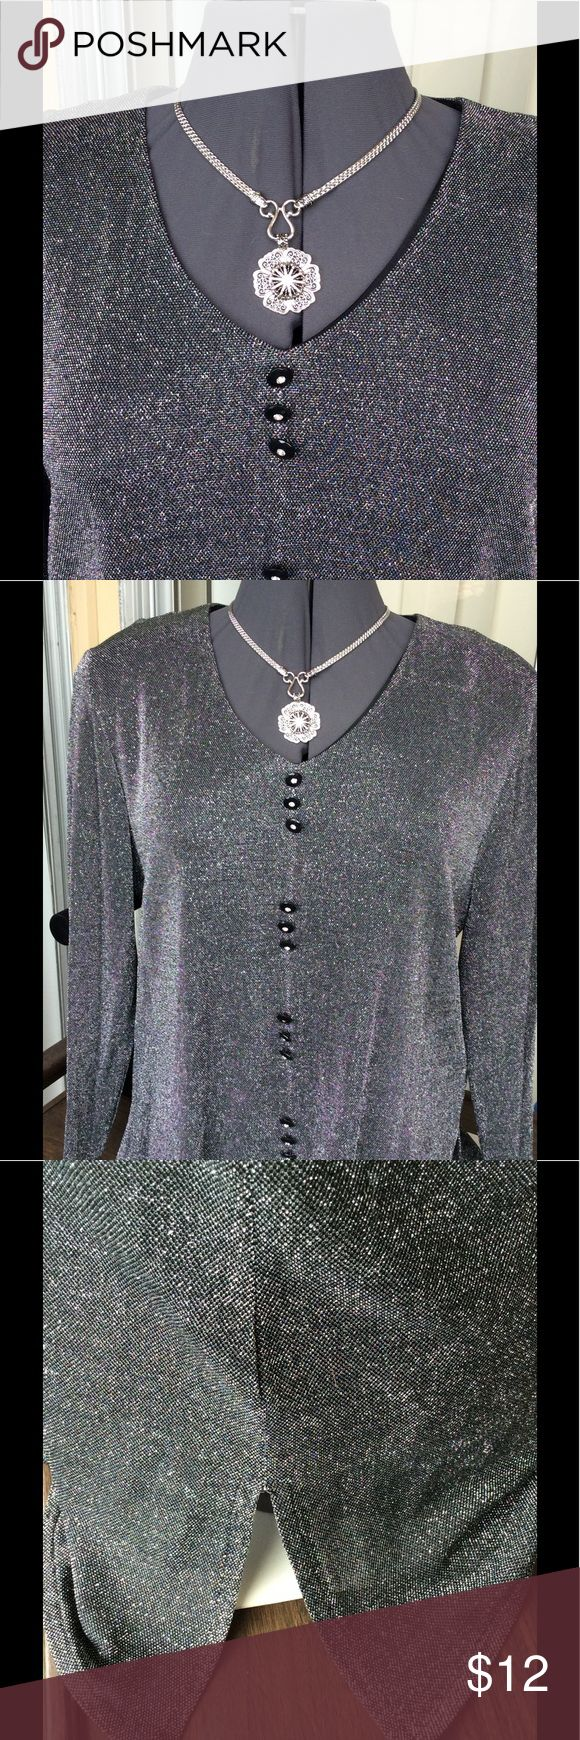 XL Black and silver blouse This long sleeve blouse is in excellent used condition. Black with silver shimmering thread. Best I can remember, it is an XL. Bust measures 44 between armpits. Side slits and slit in front. Casual yet dressy! Buttons with rhinestones ONE missing it. See last picture. Snap Necklace also for sale in my closet. Another Thyme Tops Blouses